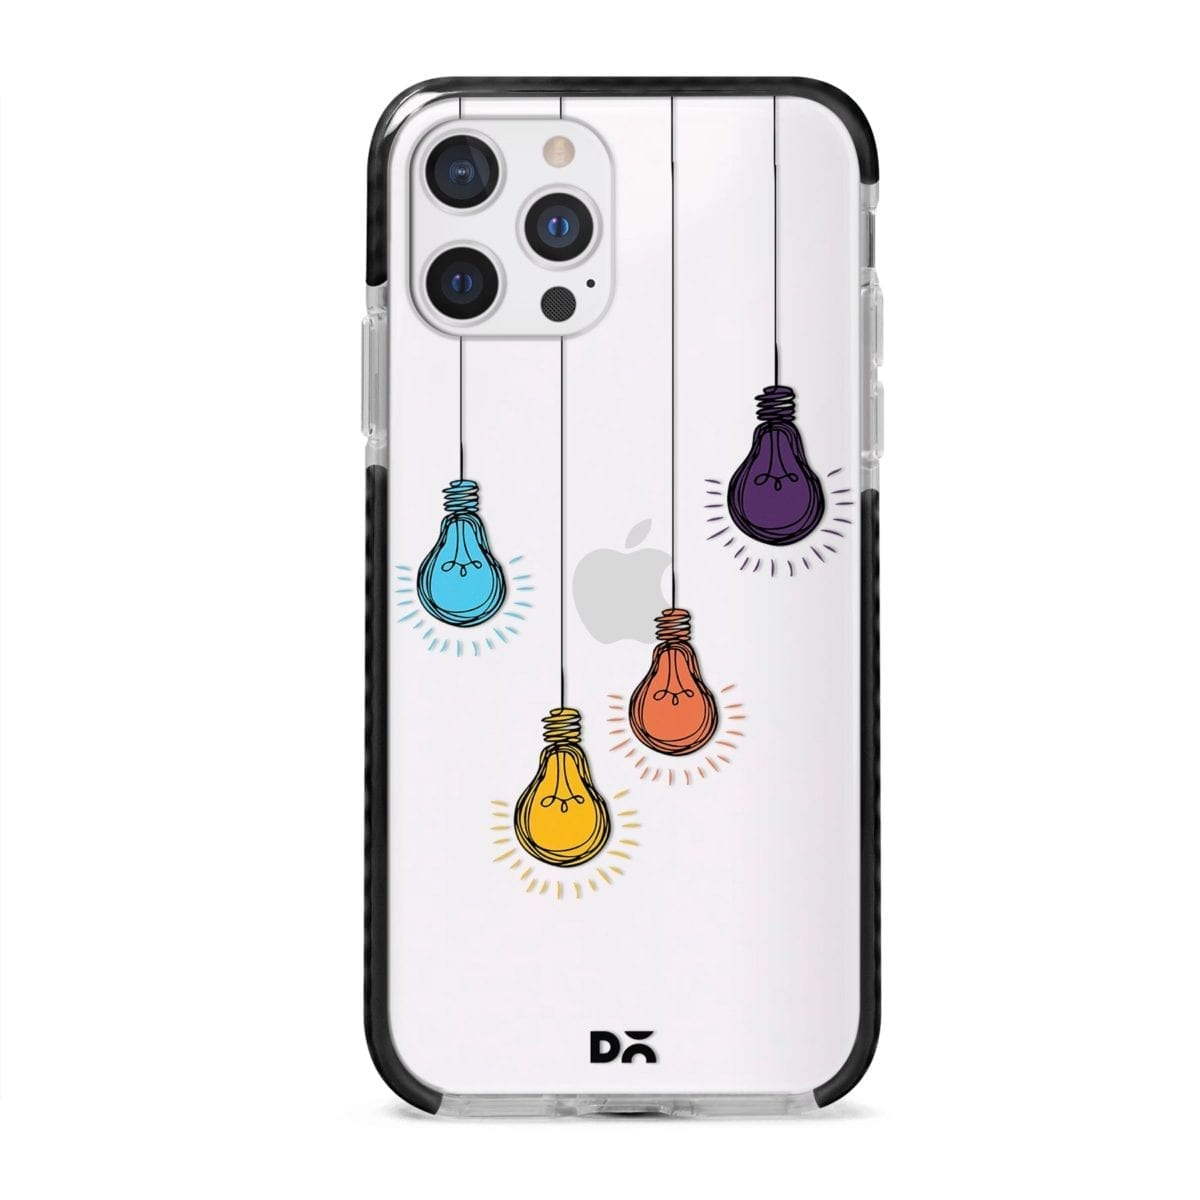 Clear Bulbs Stride Case Cover for Apple iPhone 12 Pro and Apple iPhone 12 Pro Max with great design and shock proof | Klippik | Online Shopping | Kuwait UAE Saudi